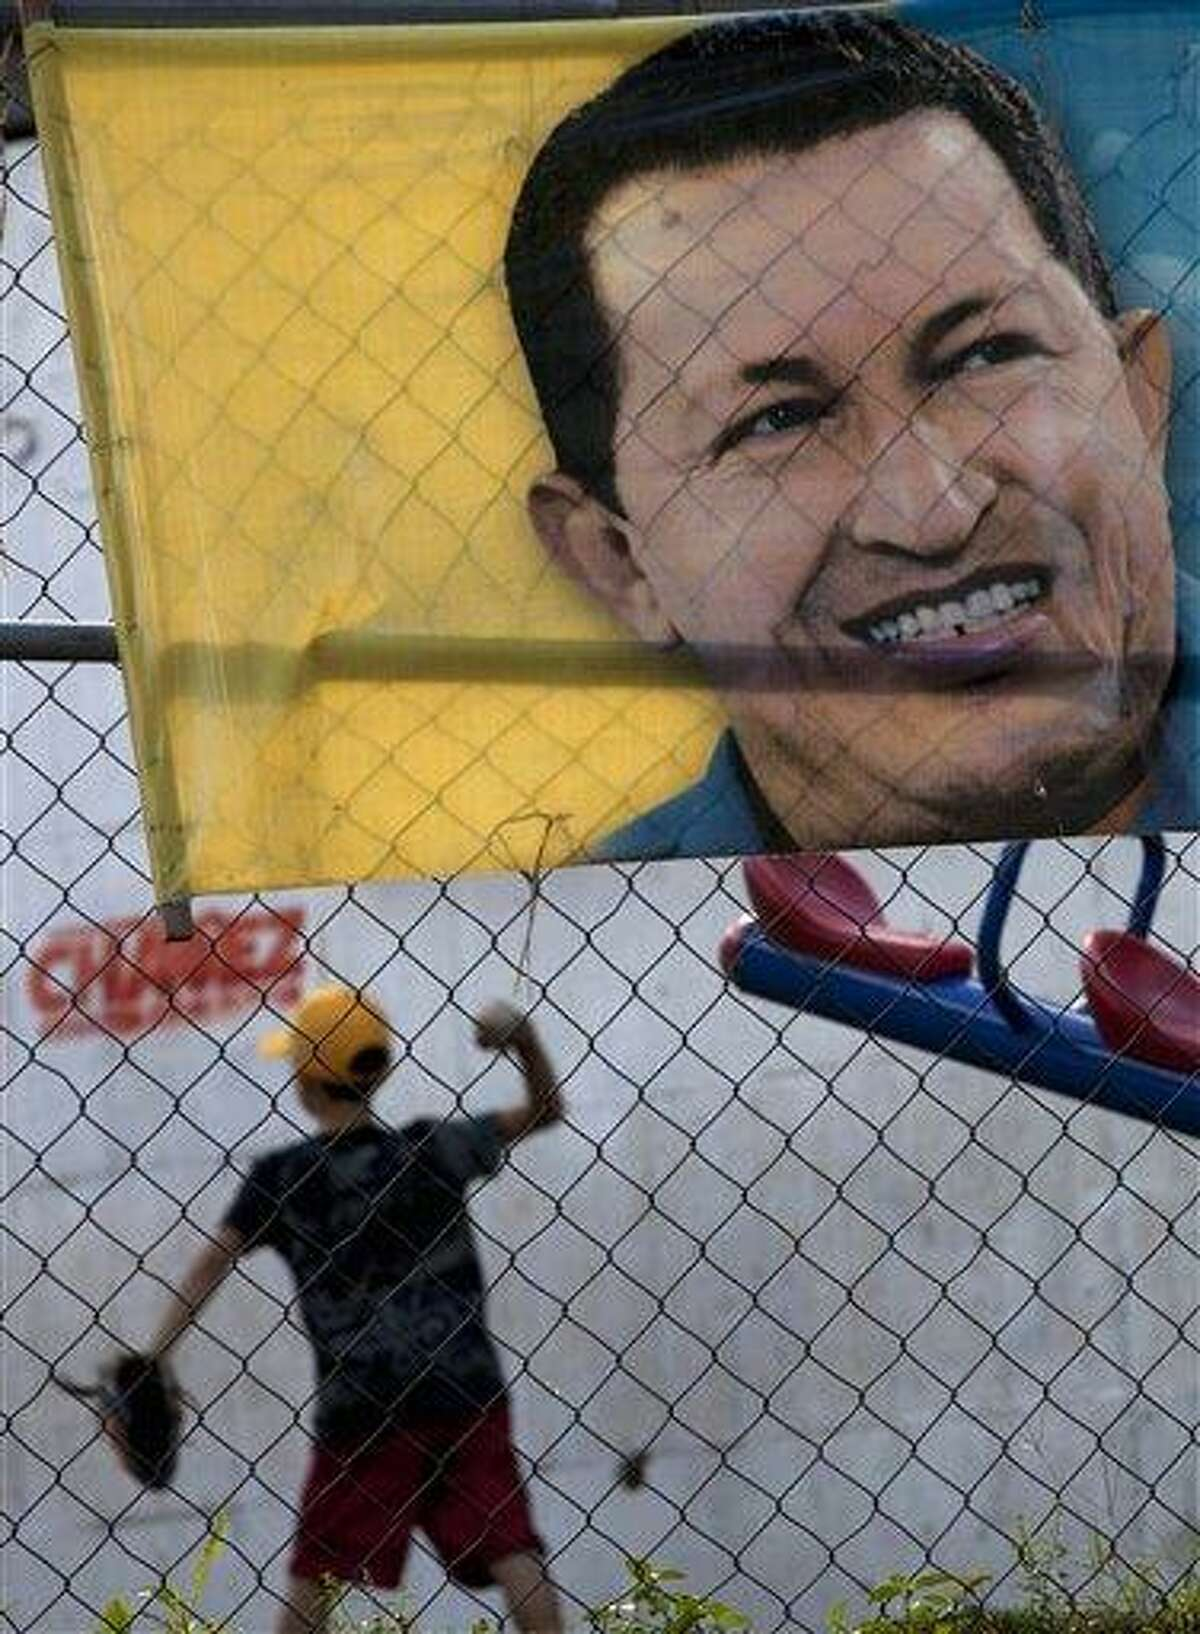 A boy plays behind a poster with an image depicting Venezuela's President Hugo Chavez in Caracas, Venezuela, Thursday, Jan. 3, 2013. The ailing president's health crisis has raised contentious questions ahead of the swearing-in set for Jan. 10, including whether the inauguration could legally be postponed. Officials have raised the possibility that Chavez might not be well enough to take the oath of office, without saying what will happen if he can't. The constitution says that if a president or president-elect dies or is declared unable to continue in office, presidential powers should be held temporarily by the president of the National Assembly and that a new presidential vote should be held within 30 days. (AP Photo/Ariana Cubillos)